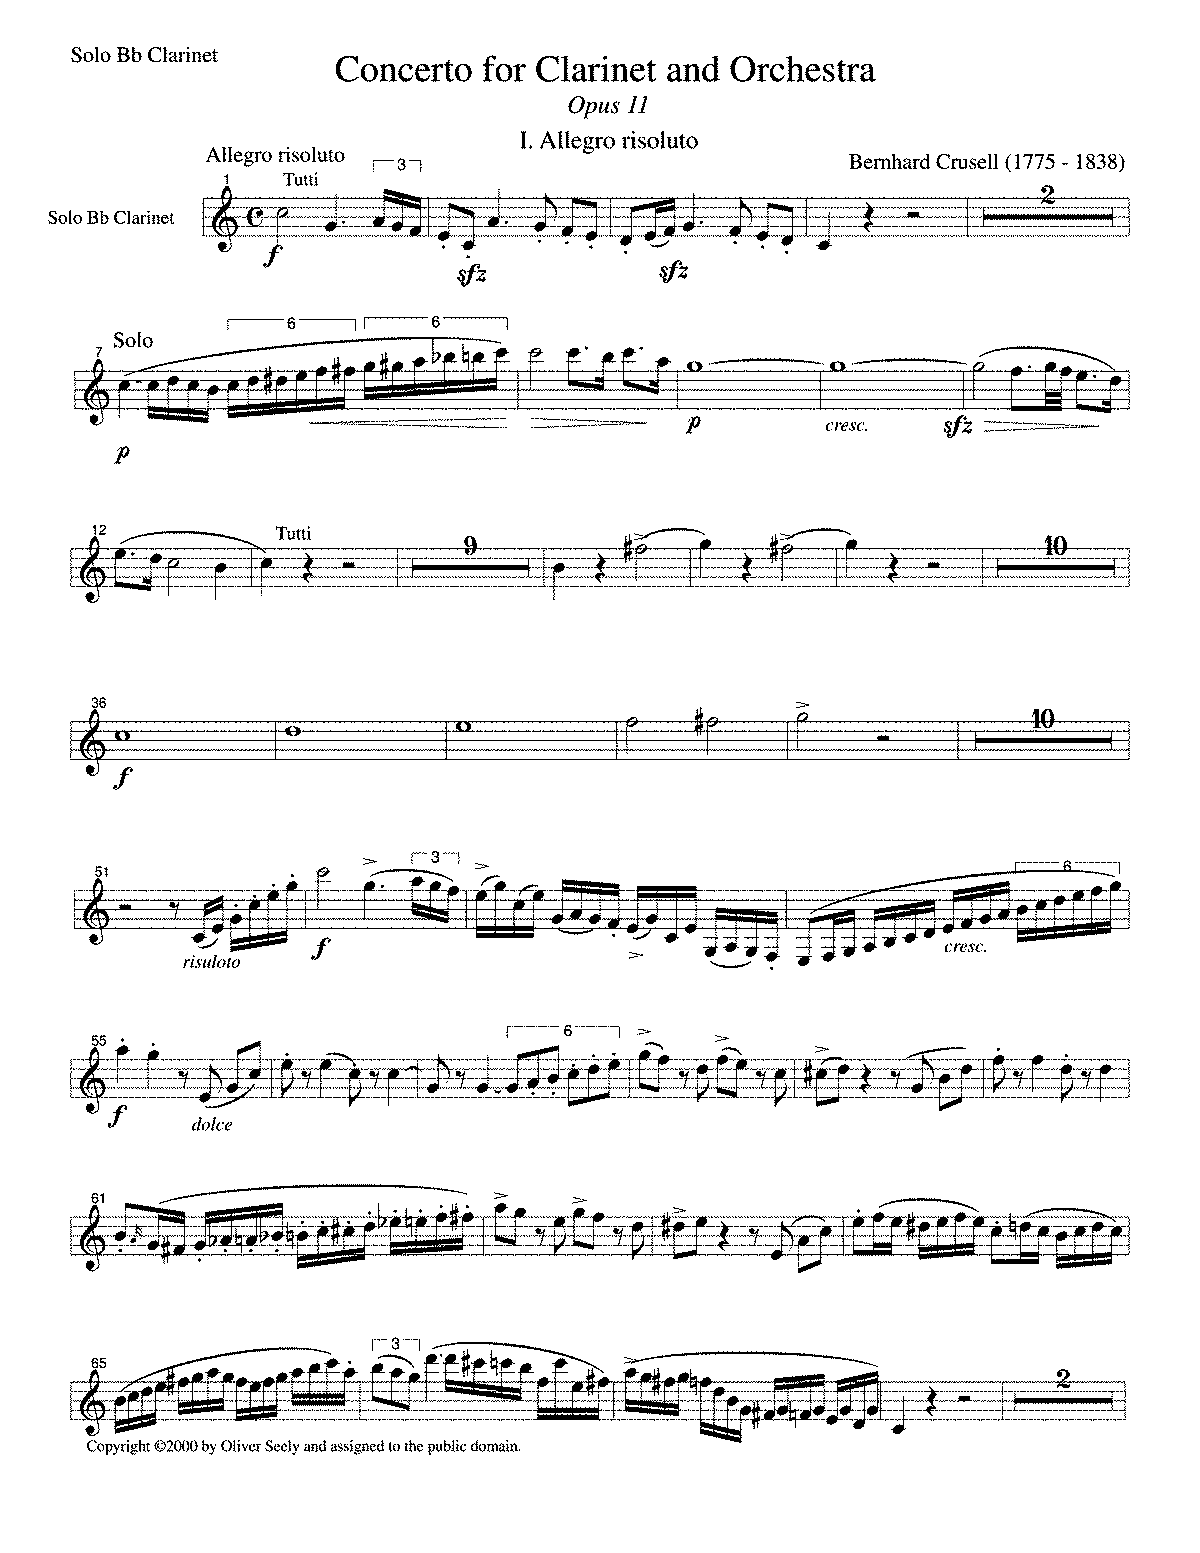 PMLP238705-CrusellSeelyOpus11woodwinds.pdf